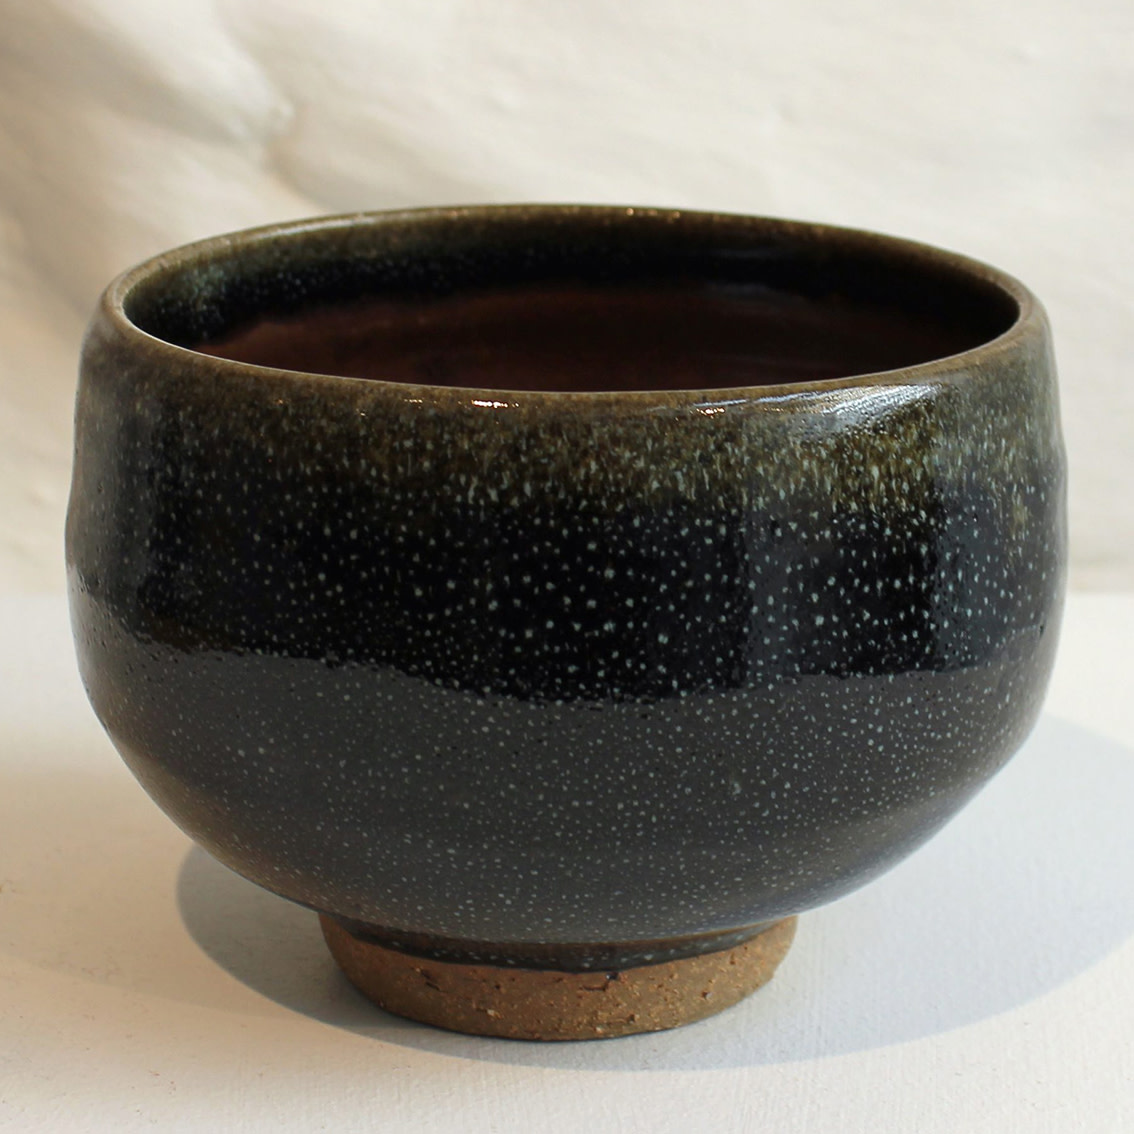 "<span class=""link fancybox-details-link""><a href=""/artists/200-matthew-tyas/works/5451-matthew-tyas-starling-chawan-bowl-2018/"">View Detail Page</a></span><div class=""artist""><strong>Matthew Tyas</strong></div> <div class=""title""><em>Starling Chawan Bowl</em>, 2018</div> <div class=""signed_and_dated"">stamped by the artist</div> <div class=""medium"">glazed thrown stoneware</div><div class=""copyright_line"">Copyright The Artist</div>"